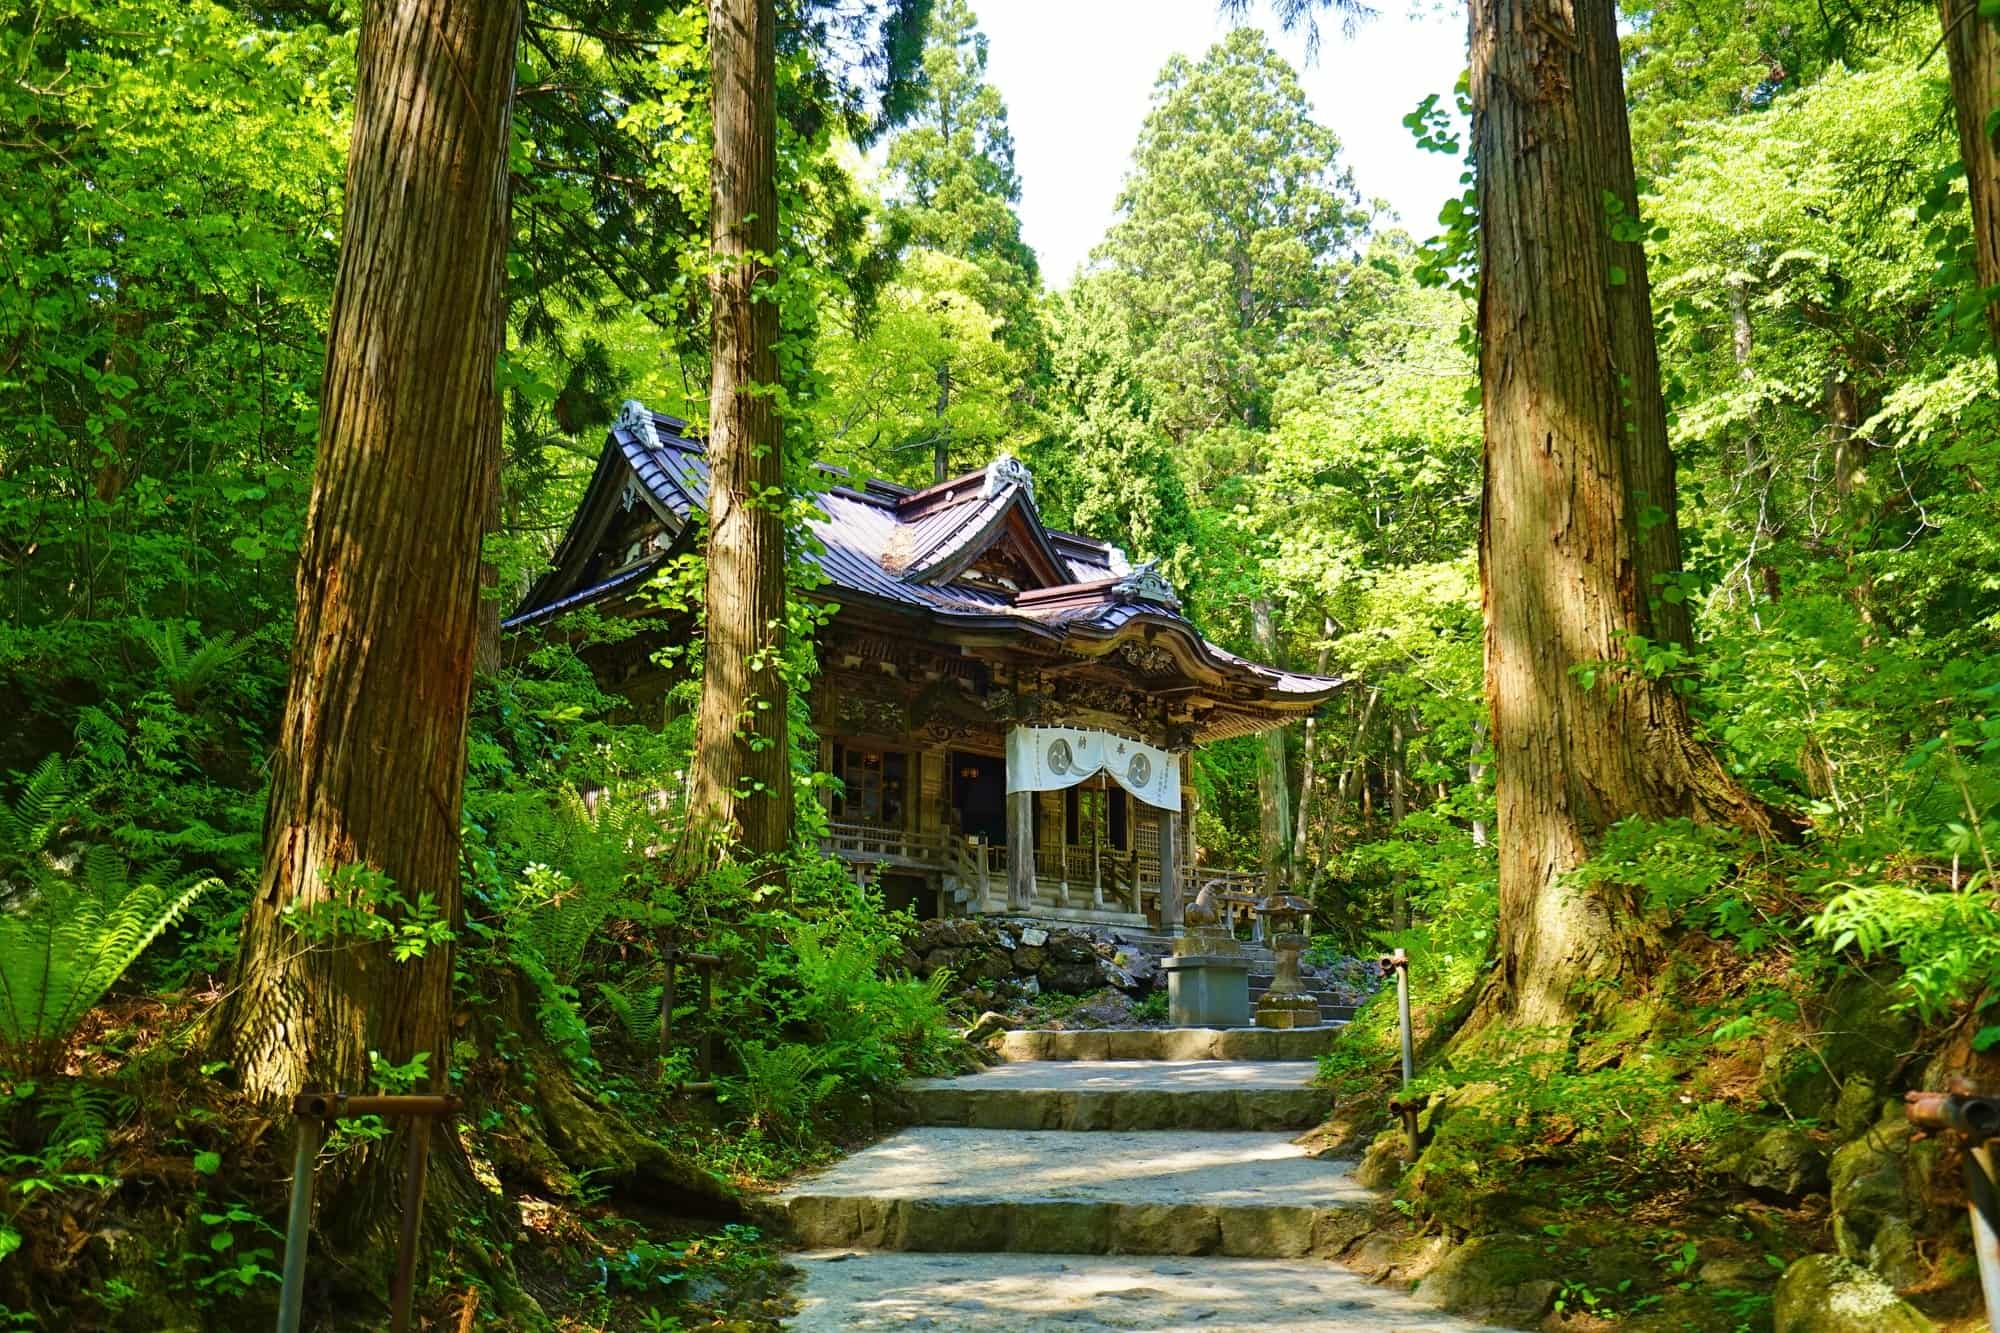 Towada Shrine surrounded by trees in a forest